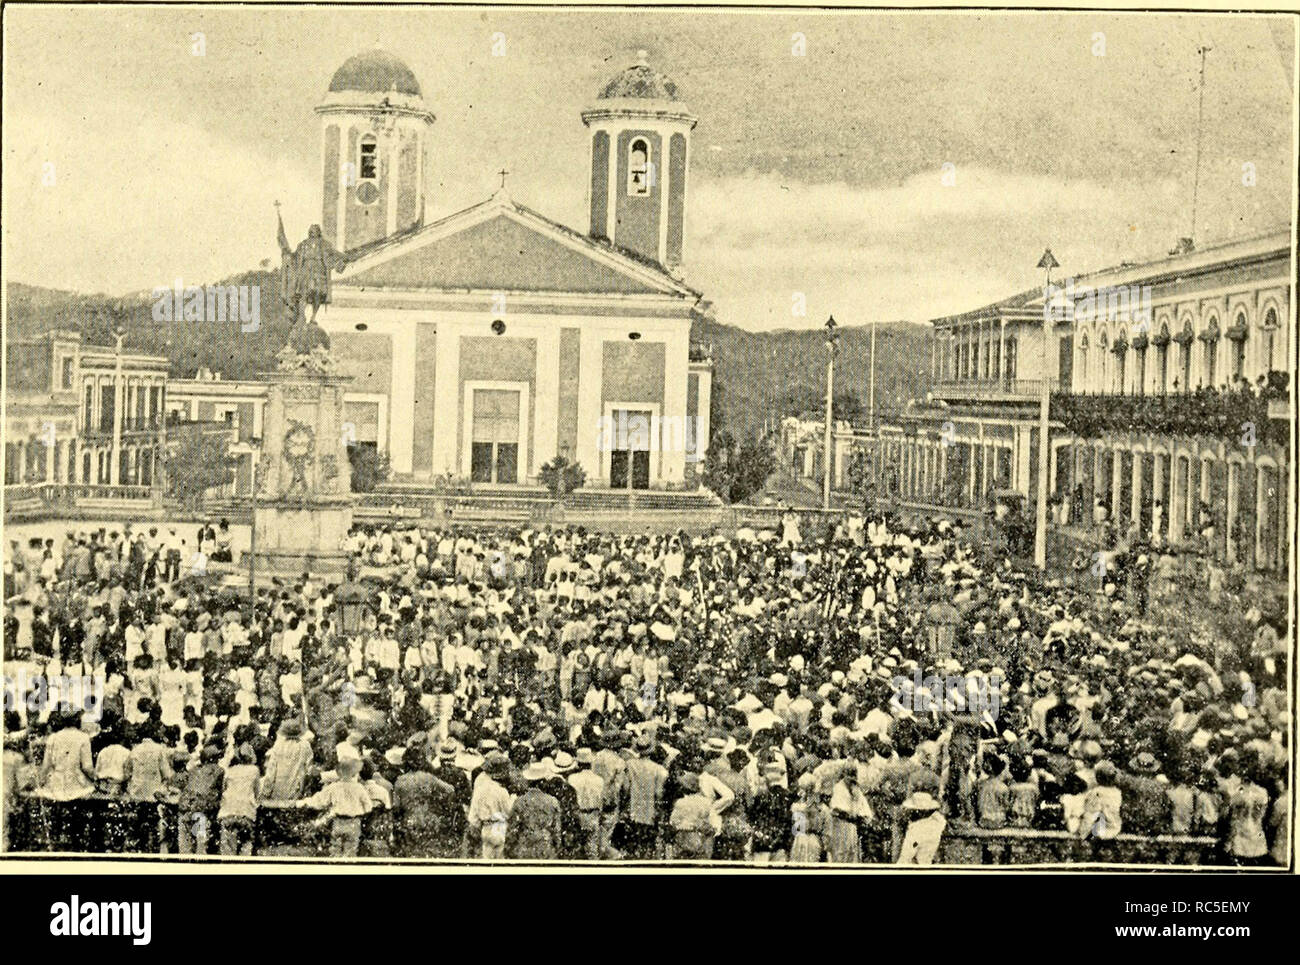 Crowded Plaza de Colón in Mayaguez, 1907 - Stock Image